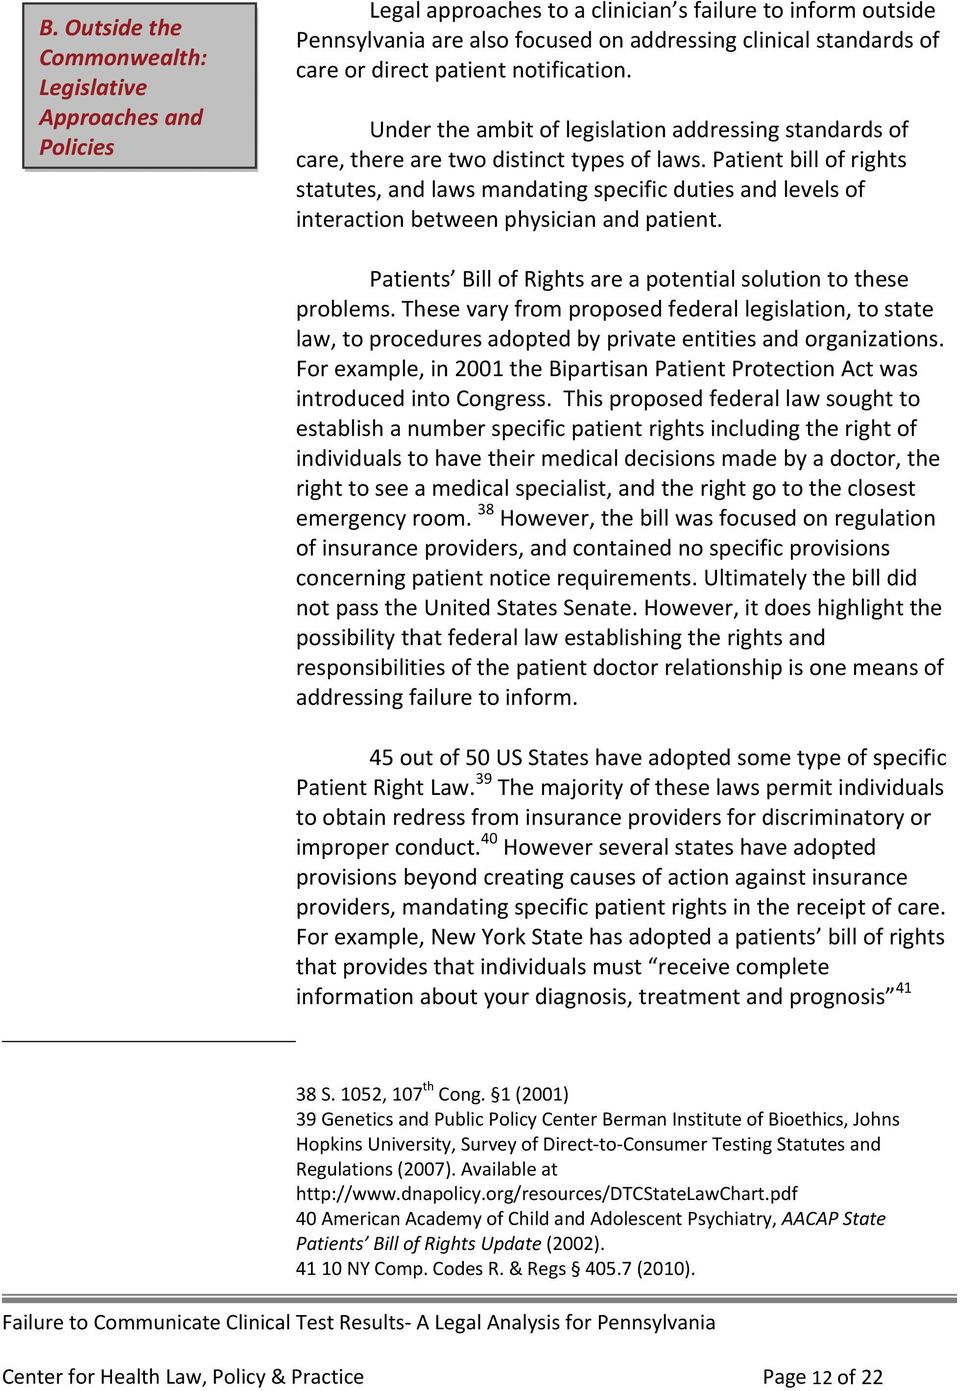 Patient bill of rights statutes, and laws mandating specific duties and levels of interaction between physician and patient. Patients Bill of Rights are a potential solution to these problems.